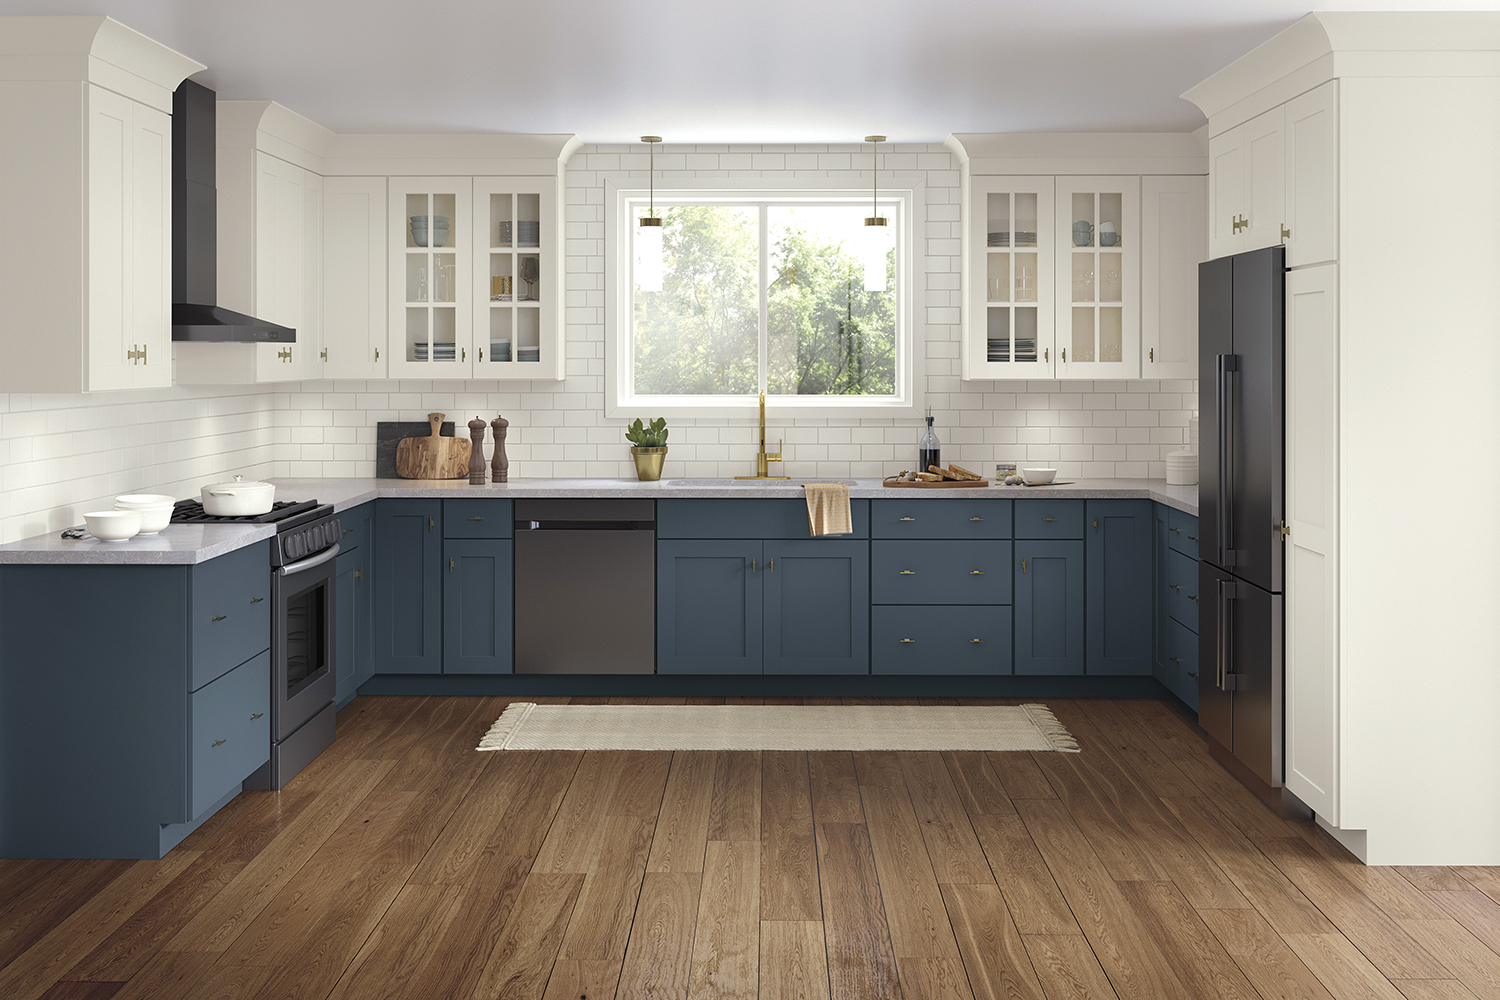 Color Trends for 2020 to Make Kitchens, Bathrooms Pop ...